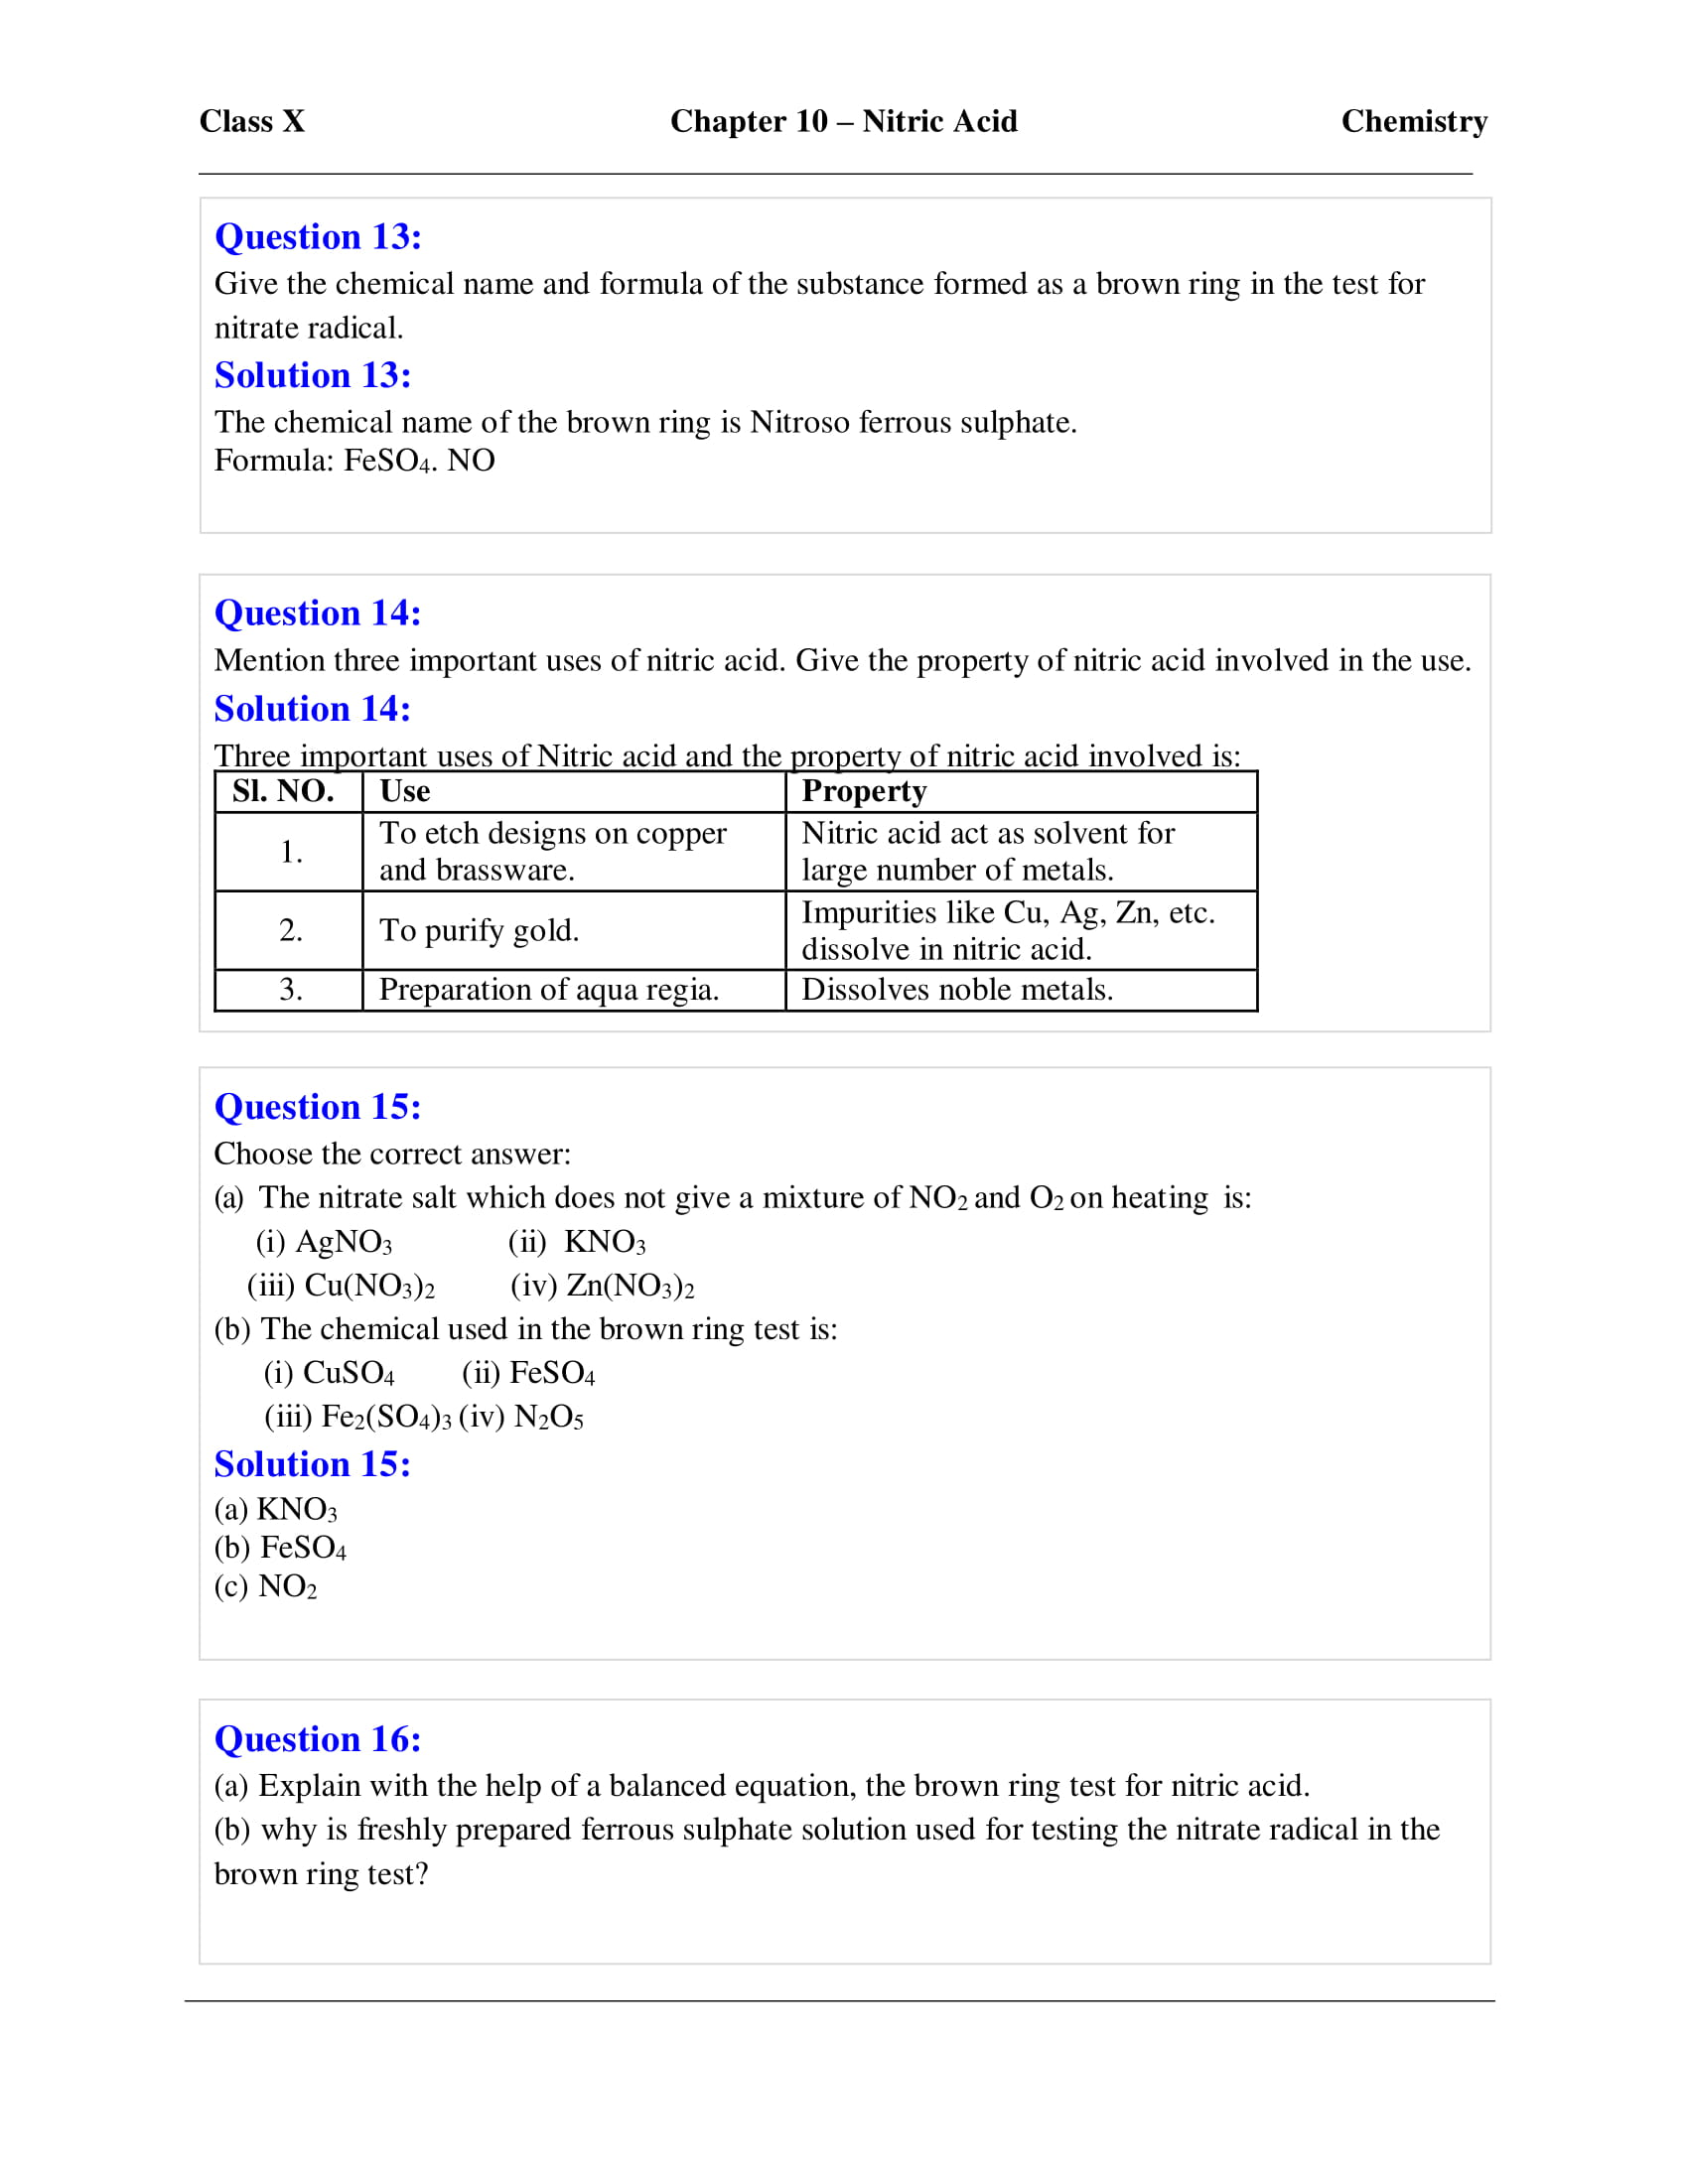 icse-selina-chemistry-solutions-class-10-chapter-10-study-of-compounds-nitric-acid-06